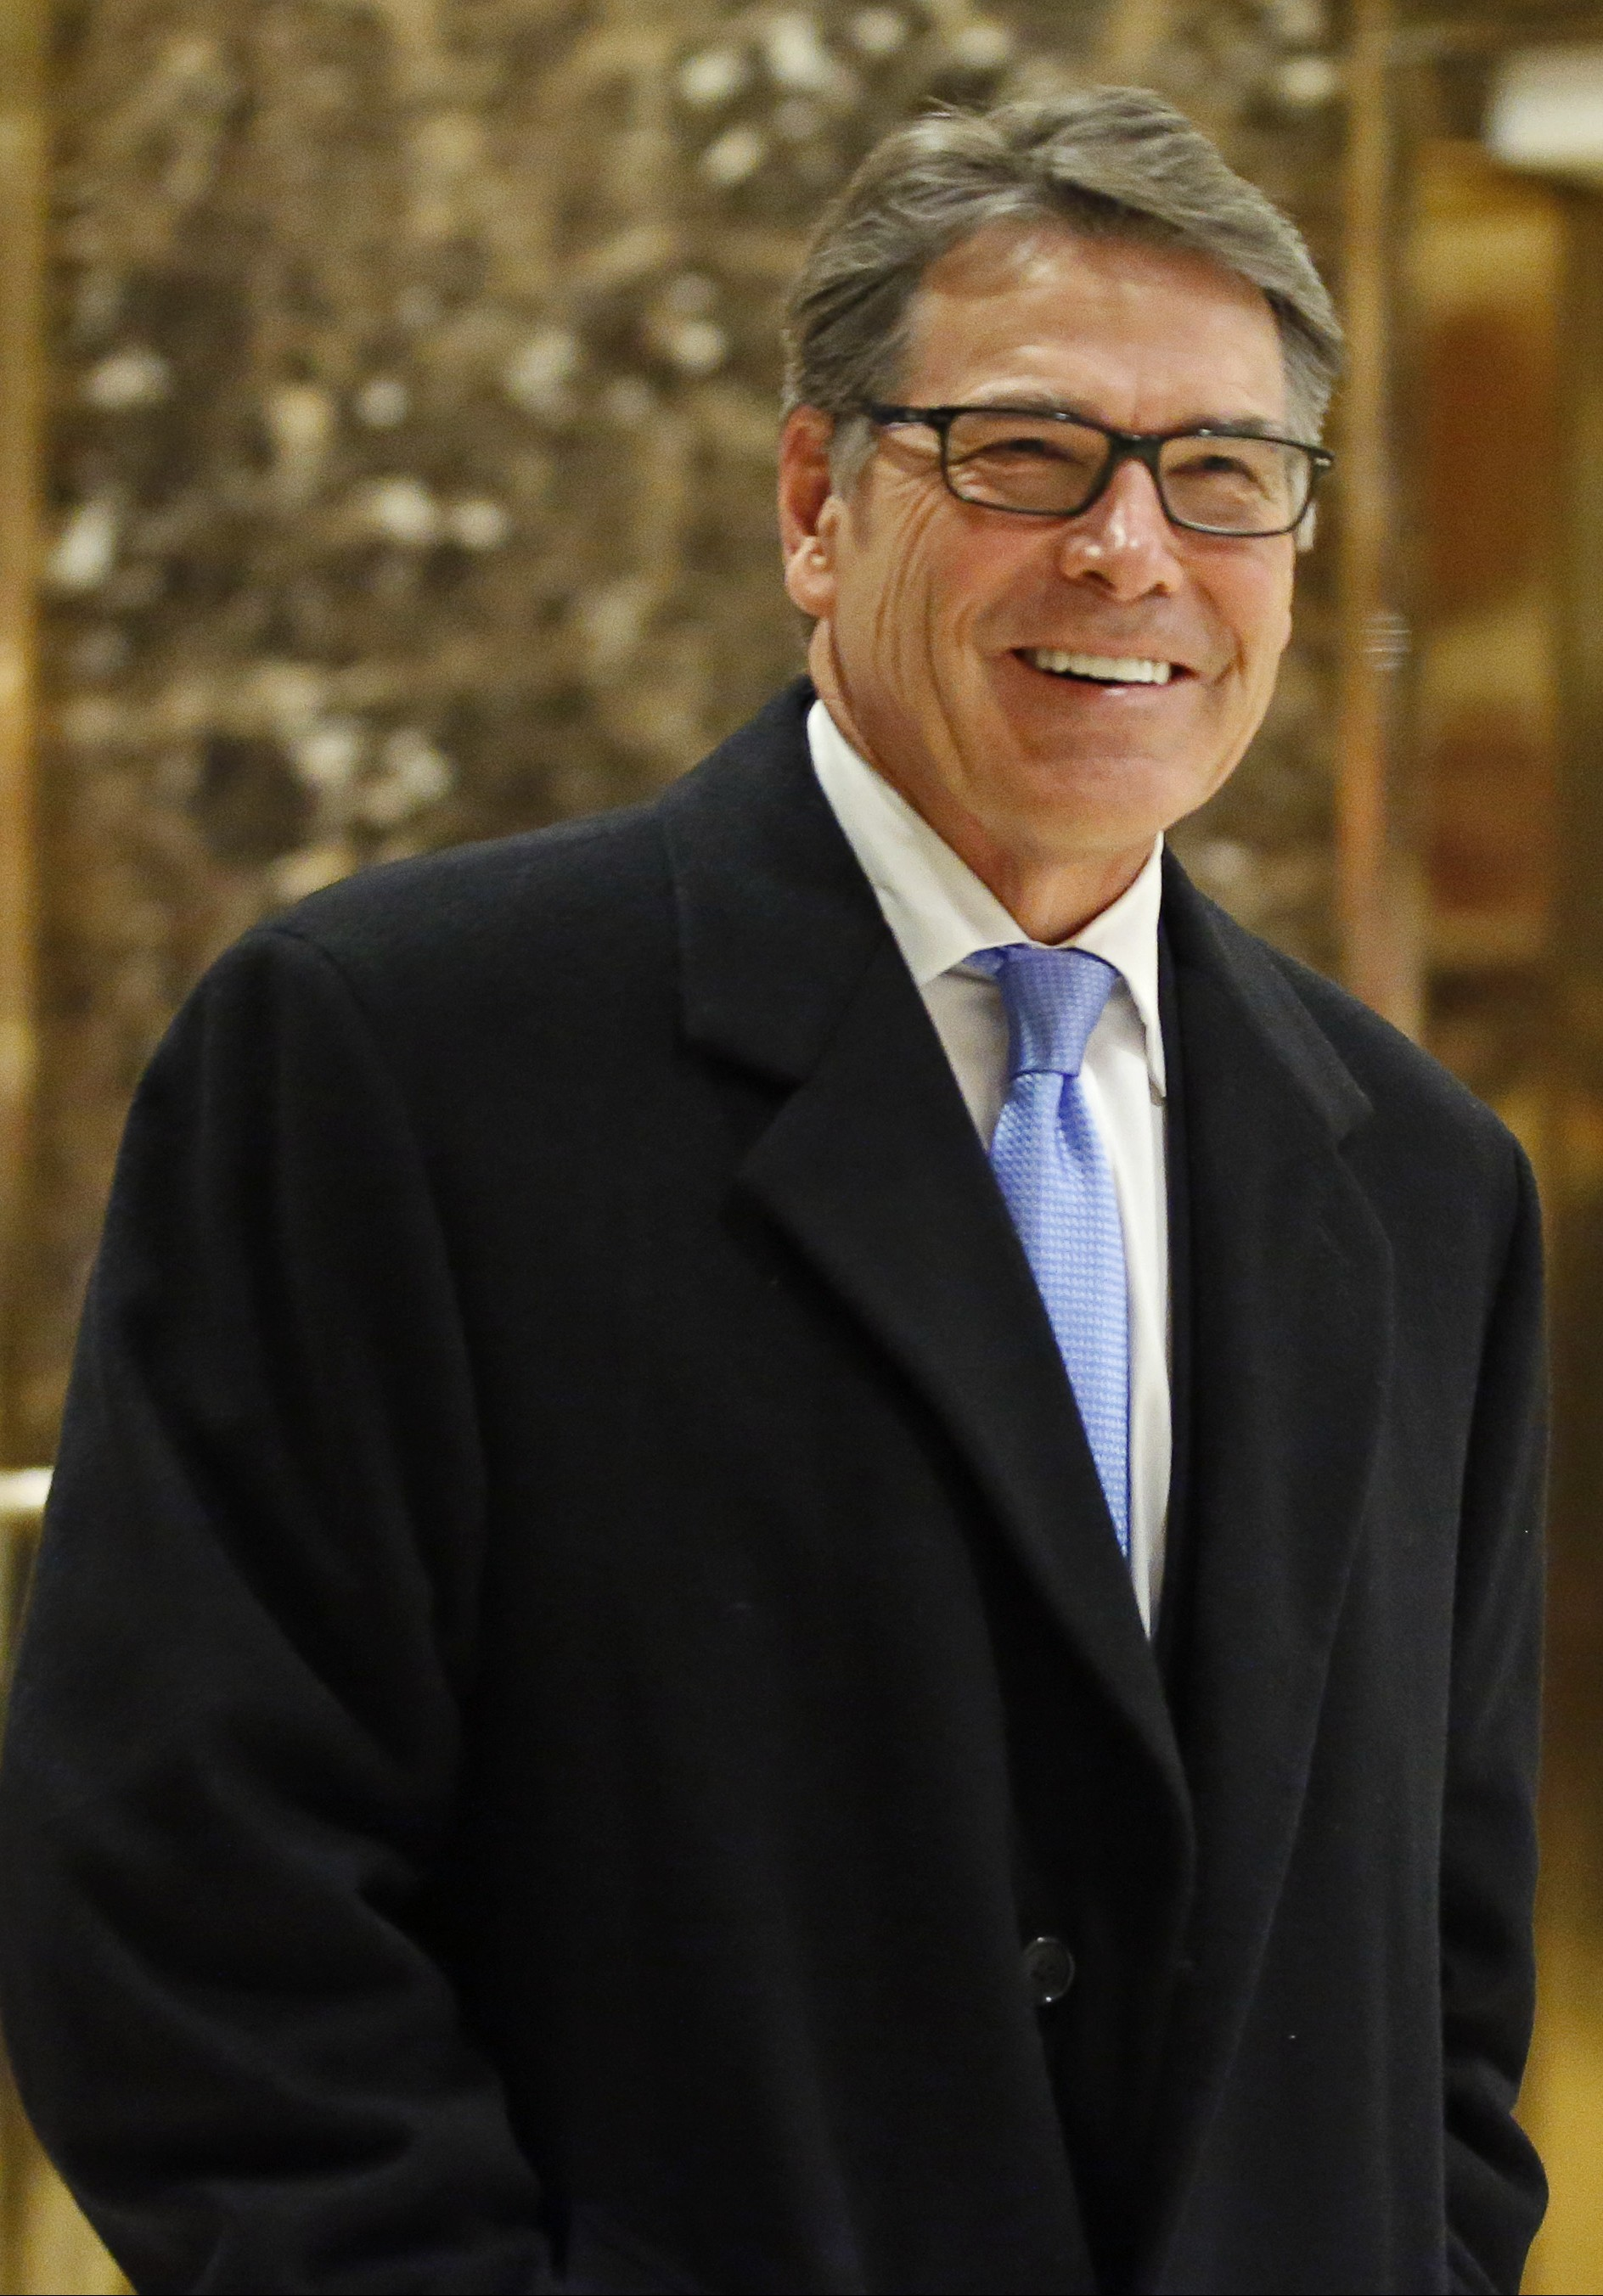 Former Texas Gov. Rick Perry smiles as he leaves Trump Tower in New York on Dec. 12, 2016. (AP Photo/Kathy Willens)